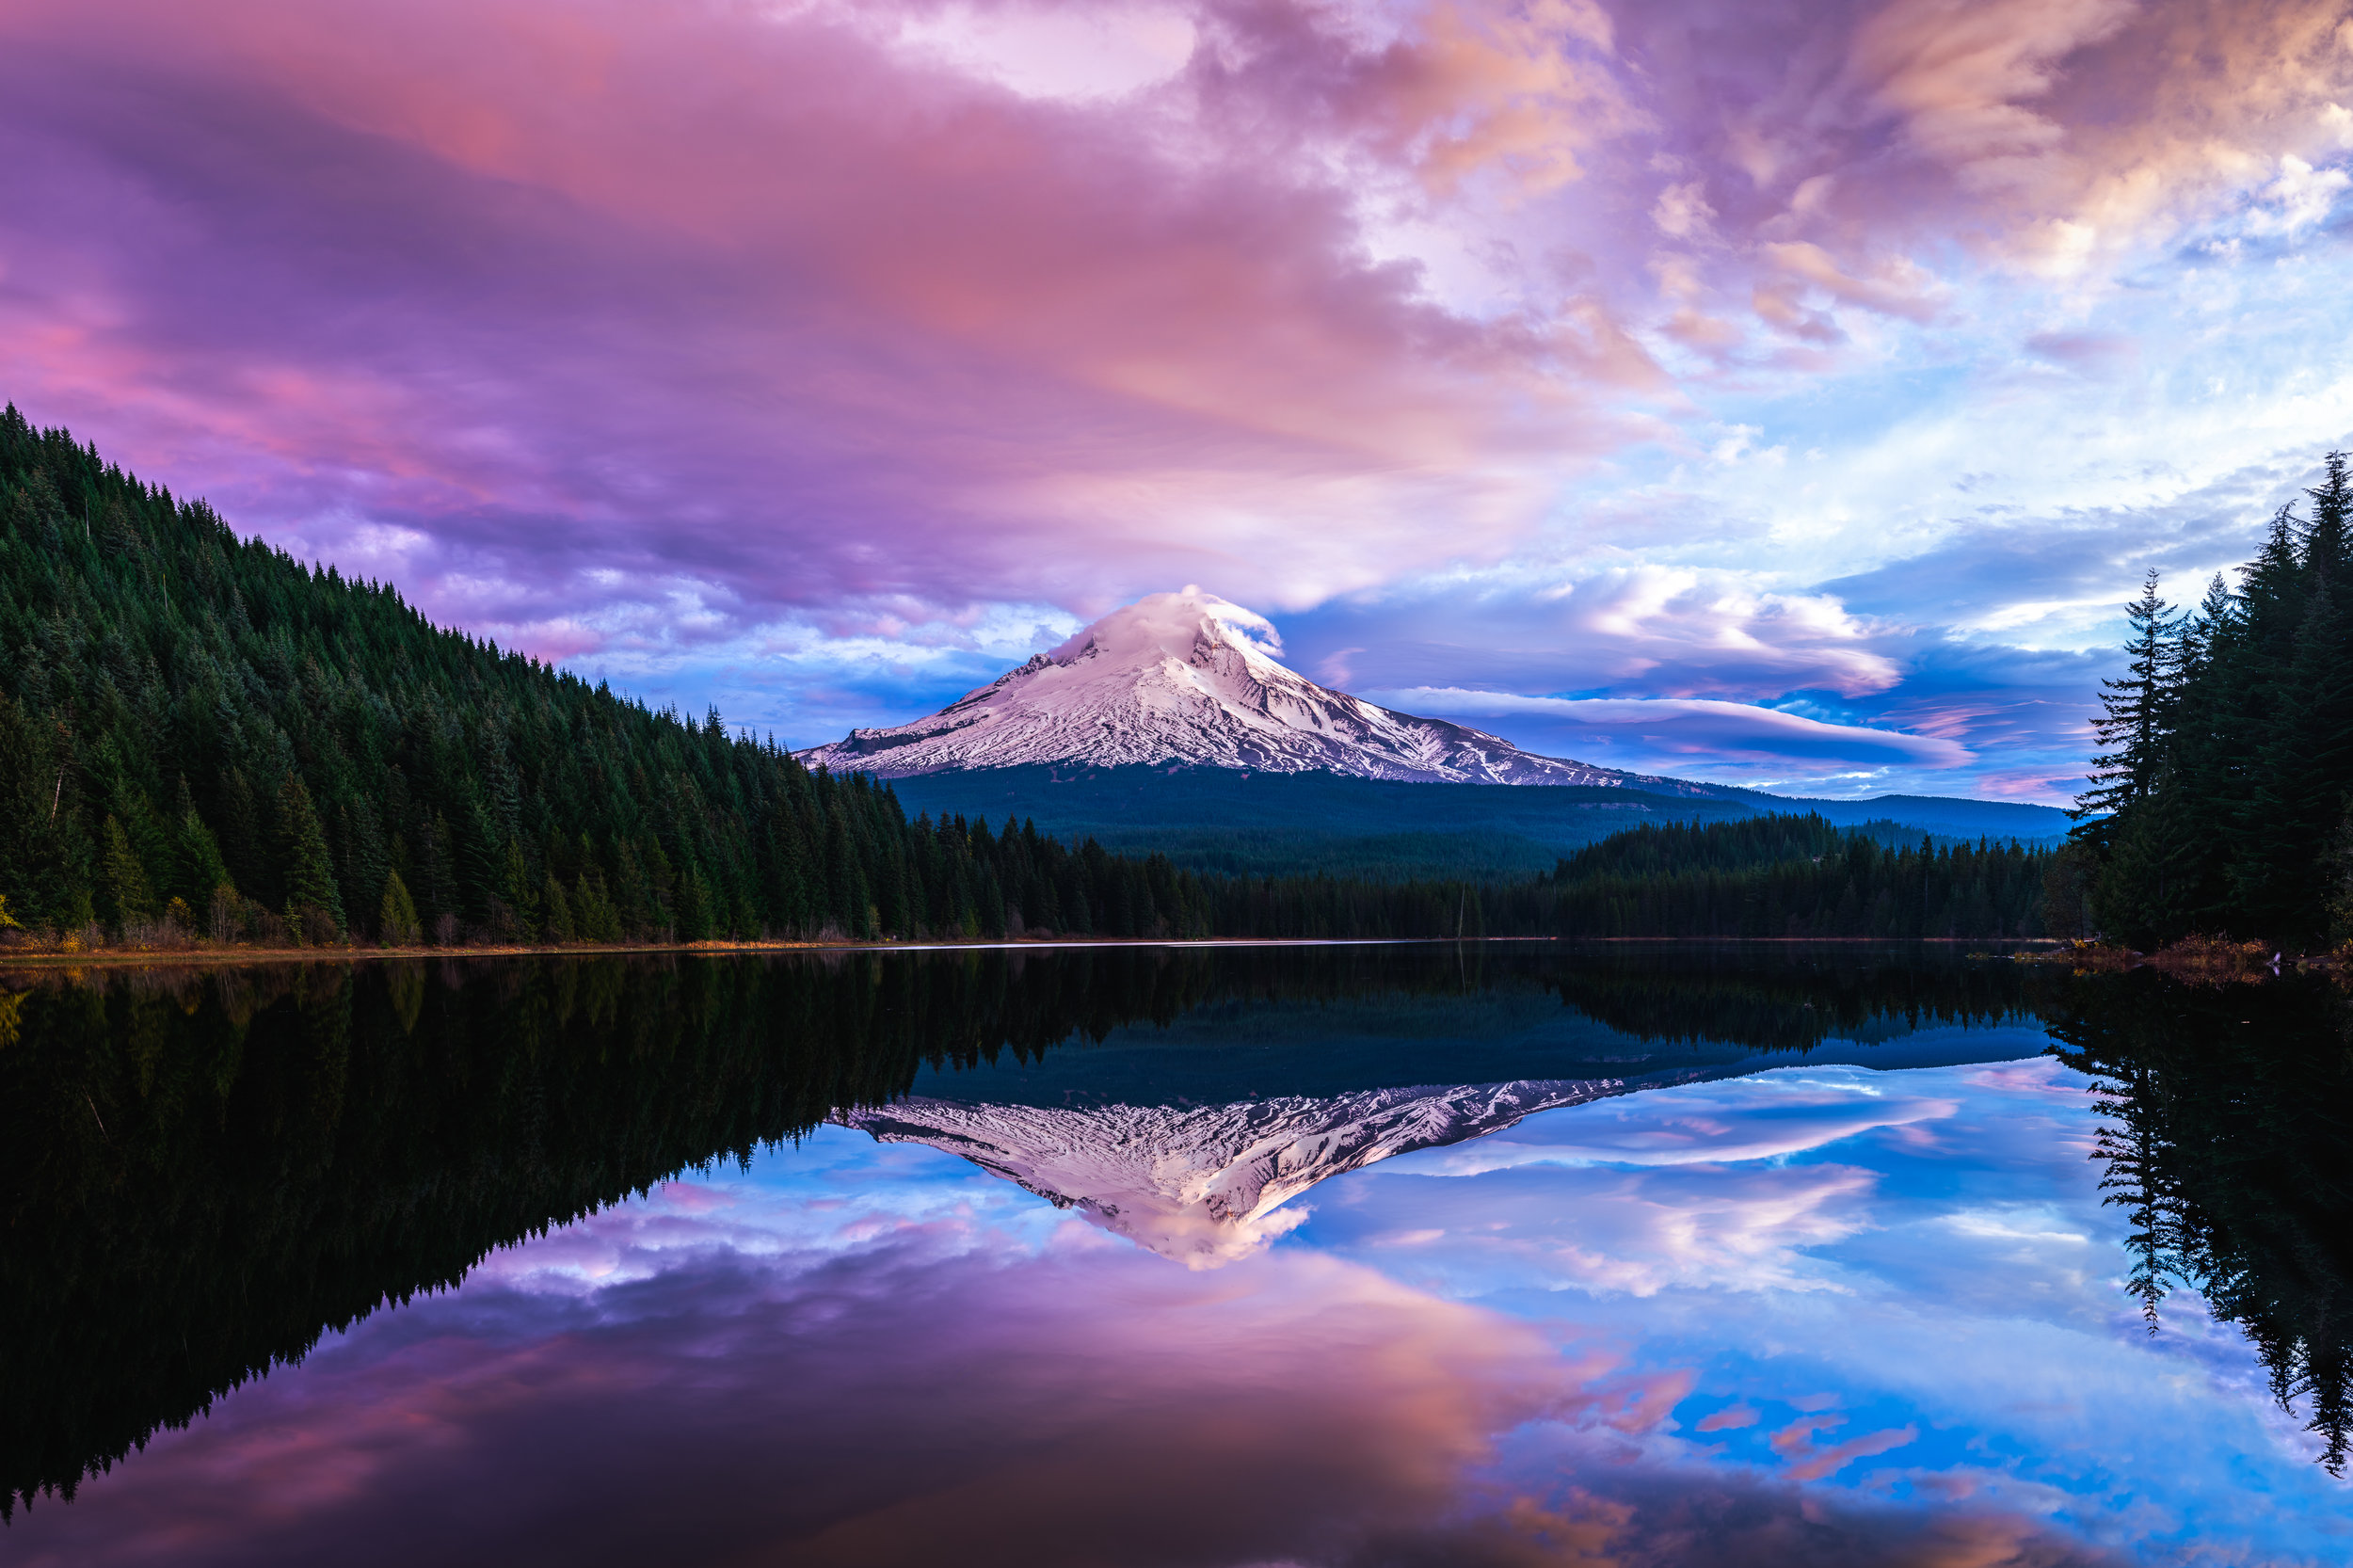 This image hangs in the living room as a massive 40x60 inch print fully representing my Oregon home!